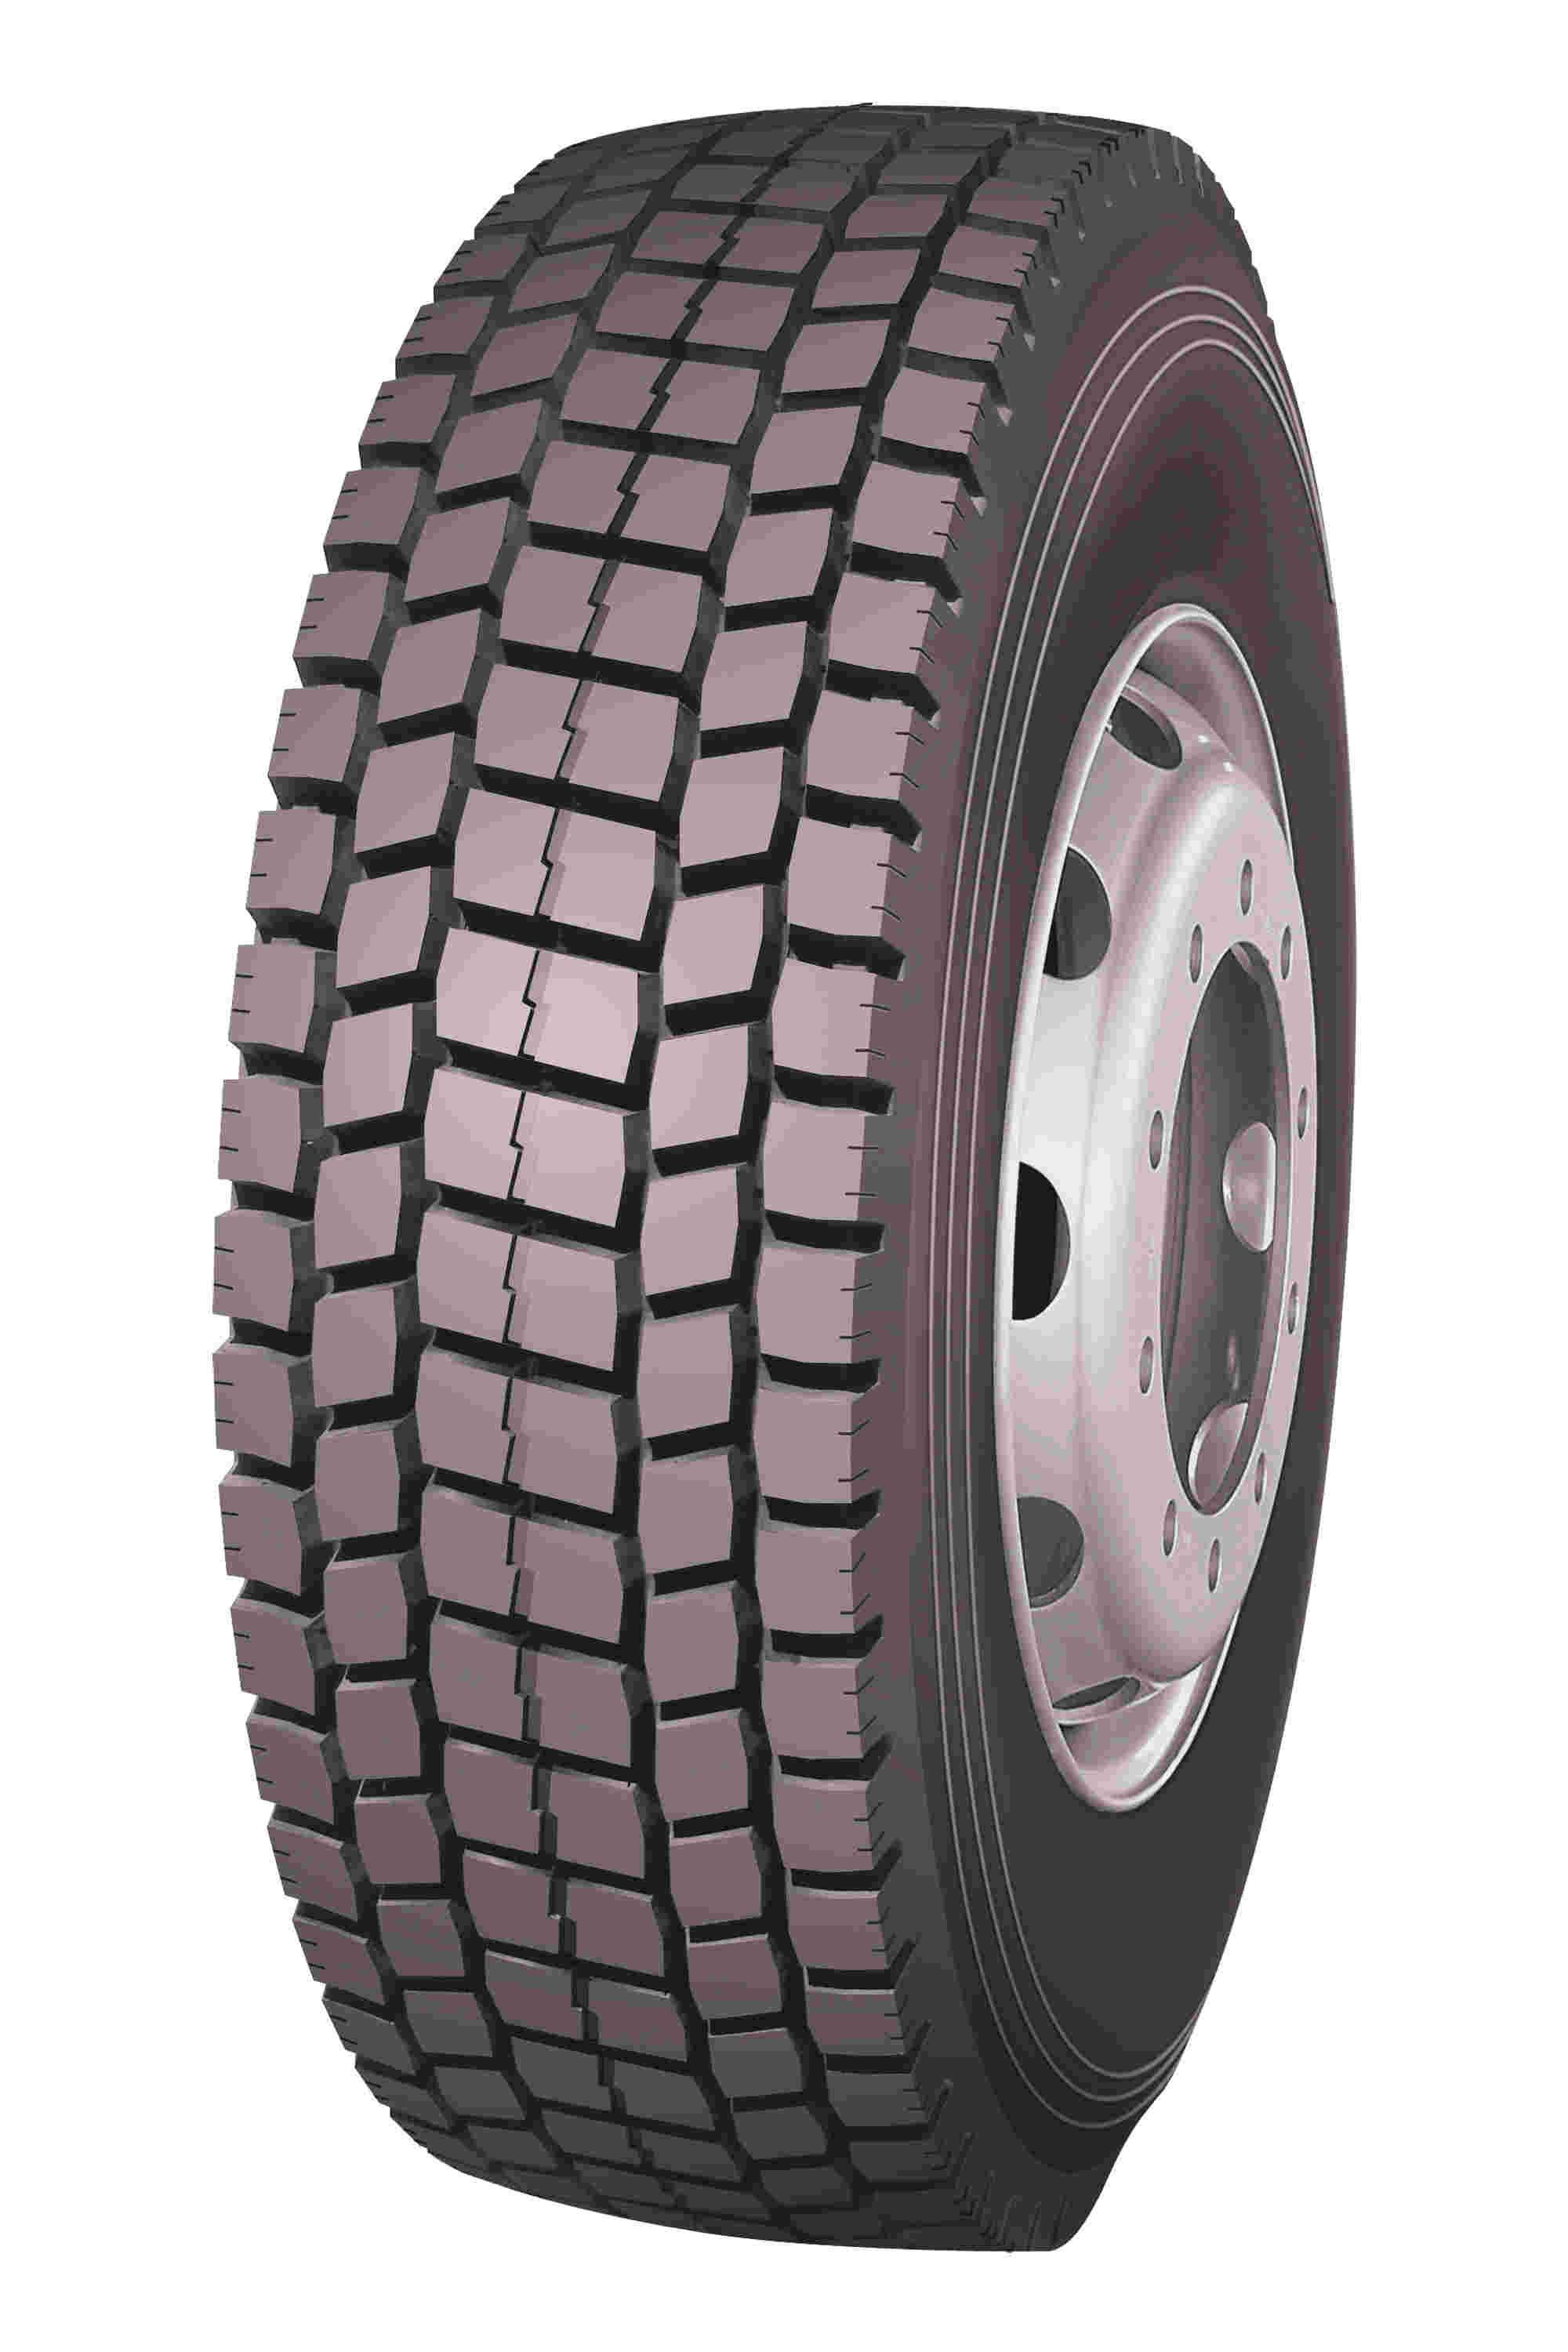 Best quality all steel radial truck tires 11r22.5 11r24.5 295/75r22.5 315/80r22.5 for America